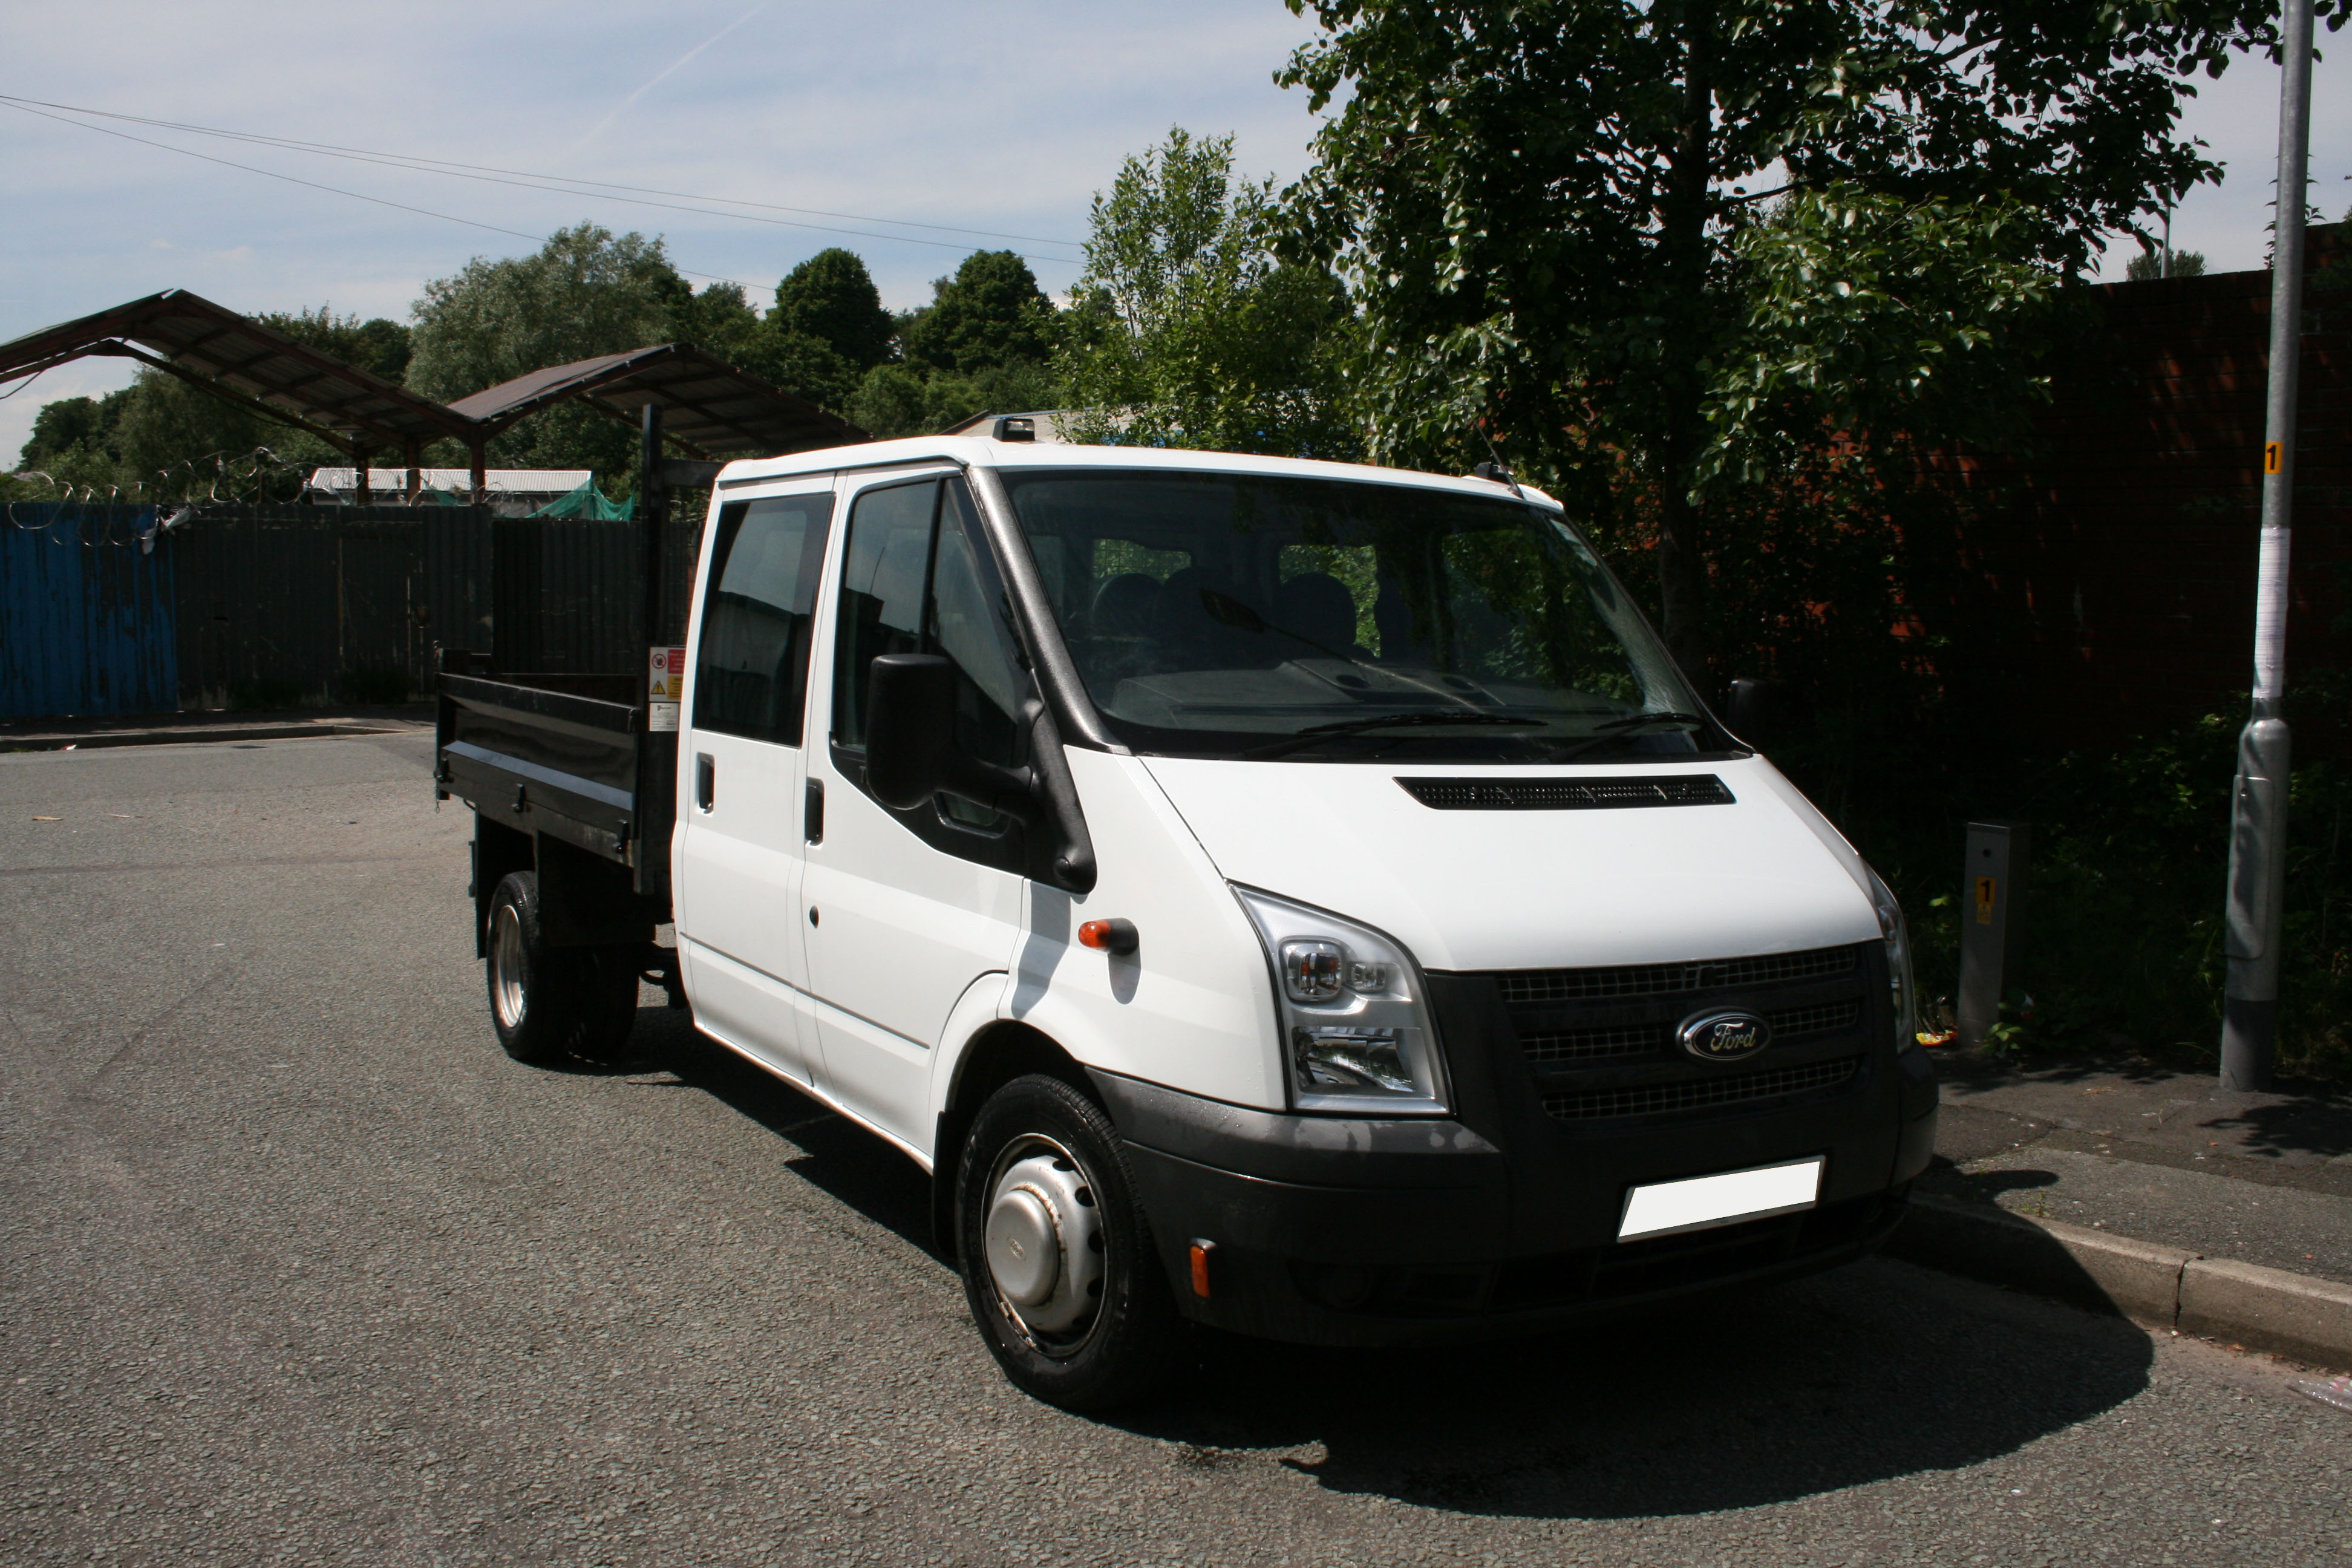 Crew Cab Tipper (Not covered by self-drive insurance and £500 deposit required) for hire in Middleton